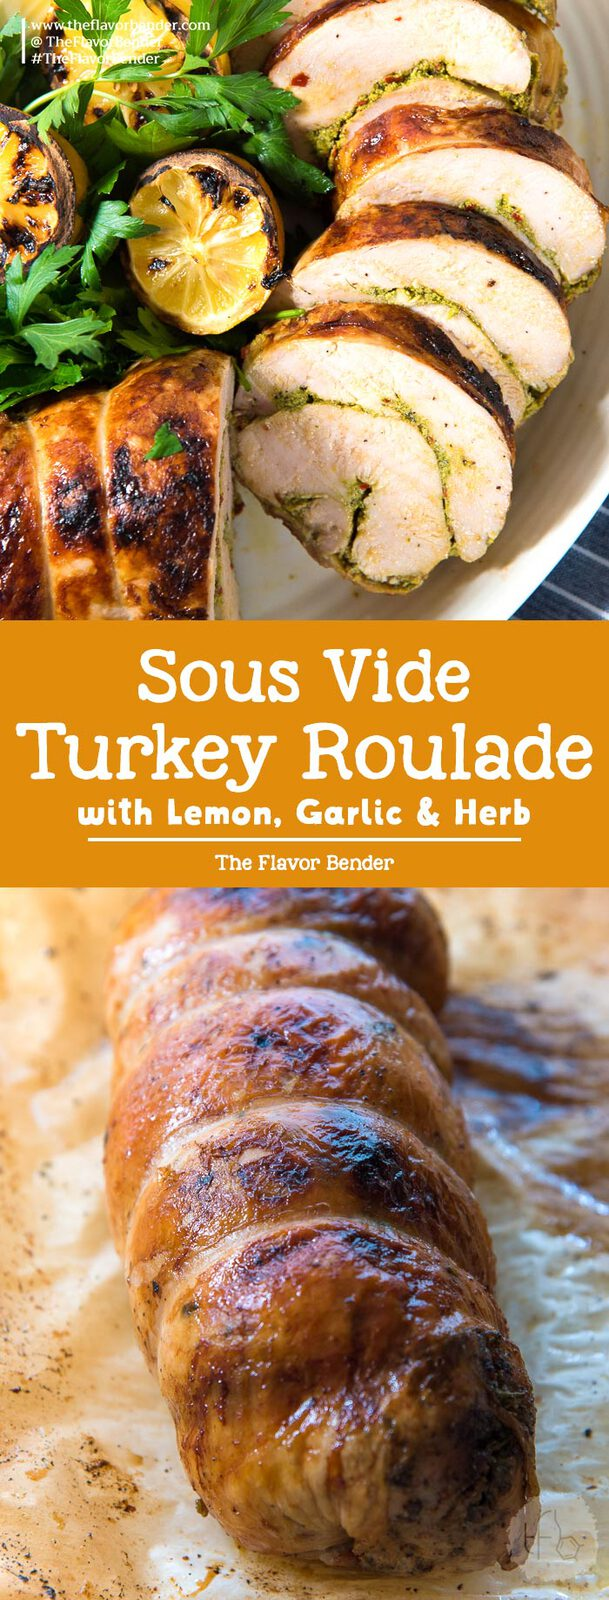 Sous Vide Turkey Roulade is cooked slow and low in the sous vide to guarantee the most perfectly tender, juicy, succulent results! Perfect for Thanksgiving and Christmas! #ThanksgivingRecipes #TurkeyRecipes #TurkeyRoast #SousVideRecipes